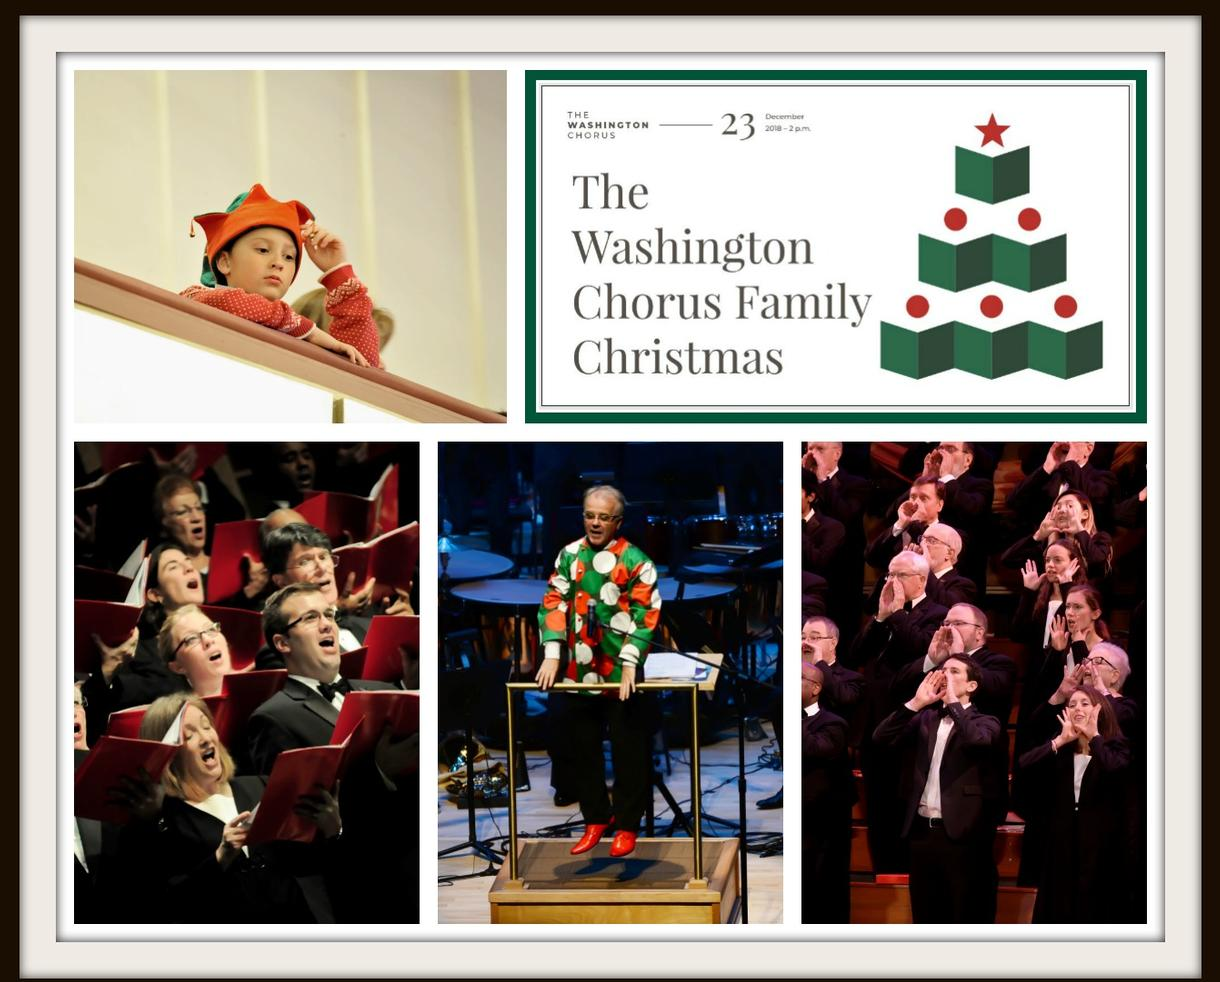 The Washington Chorus' FAMILY CHRISTMAS at George Mason's Center for the Arts